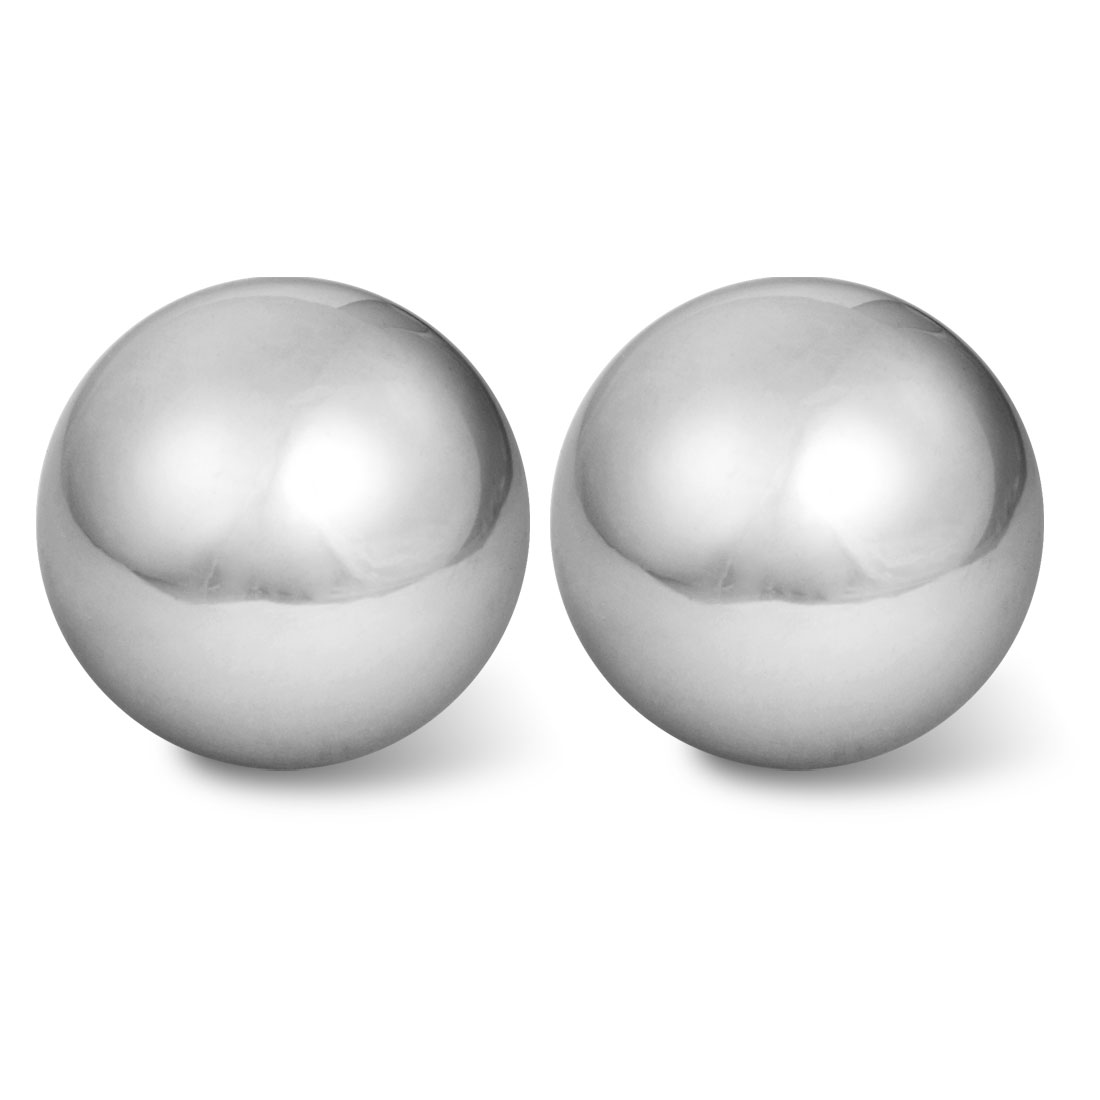 "2 Pcs Stress Relief Hand Palm Exersice Silver Tone 2"" Dia Chime Massage Ball"